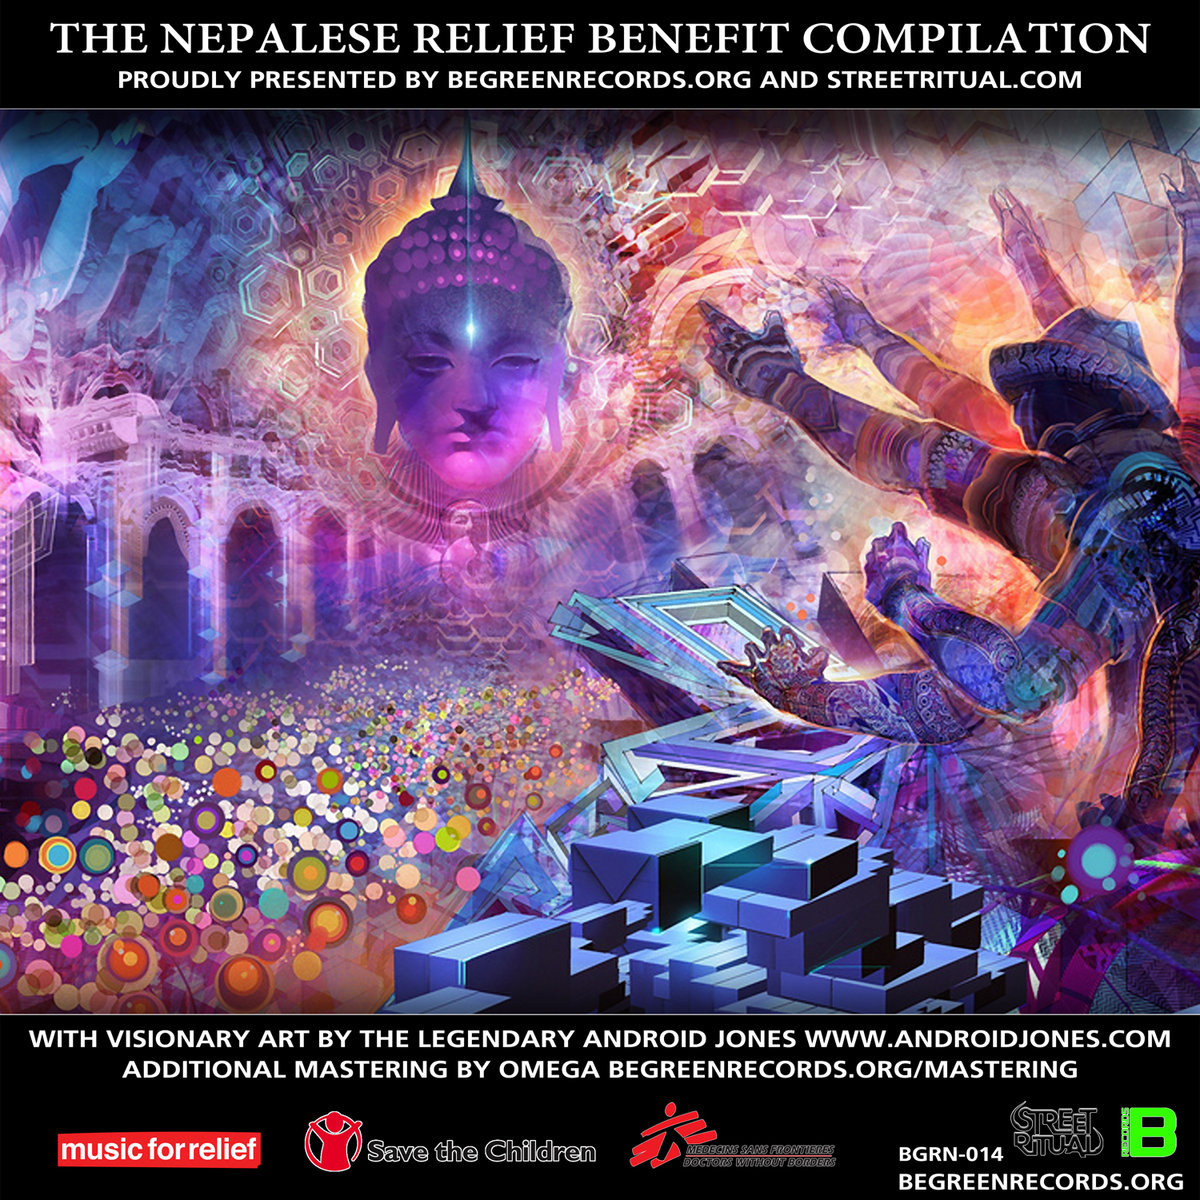 Kaminanda - Mystery School (P.Motion Mix) @ 'Various Artists - The Nepalese Relief Benefit Compilation' album (bass, electronic)